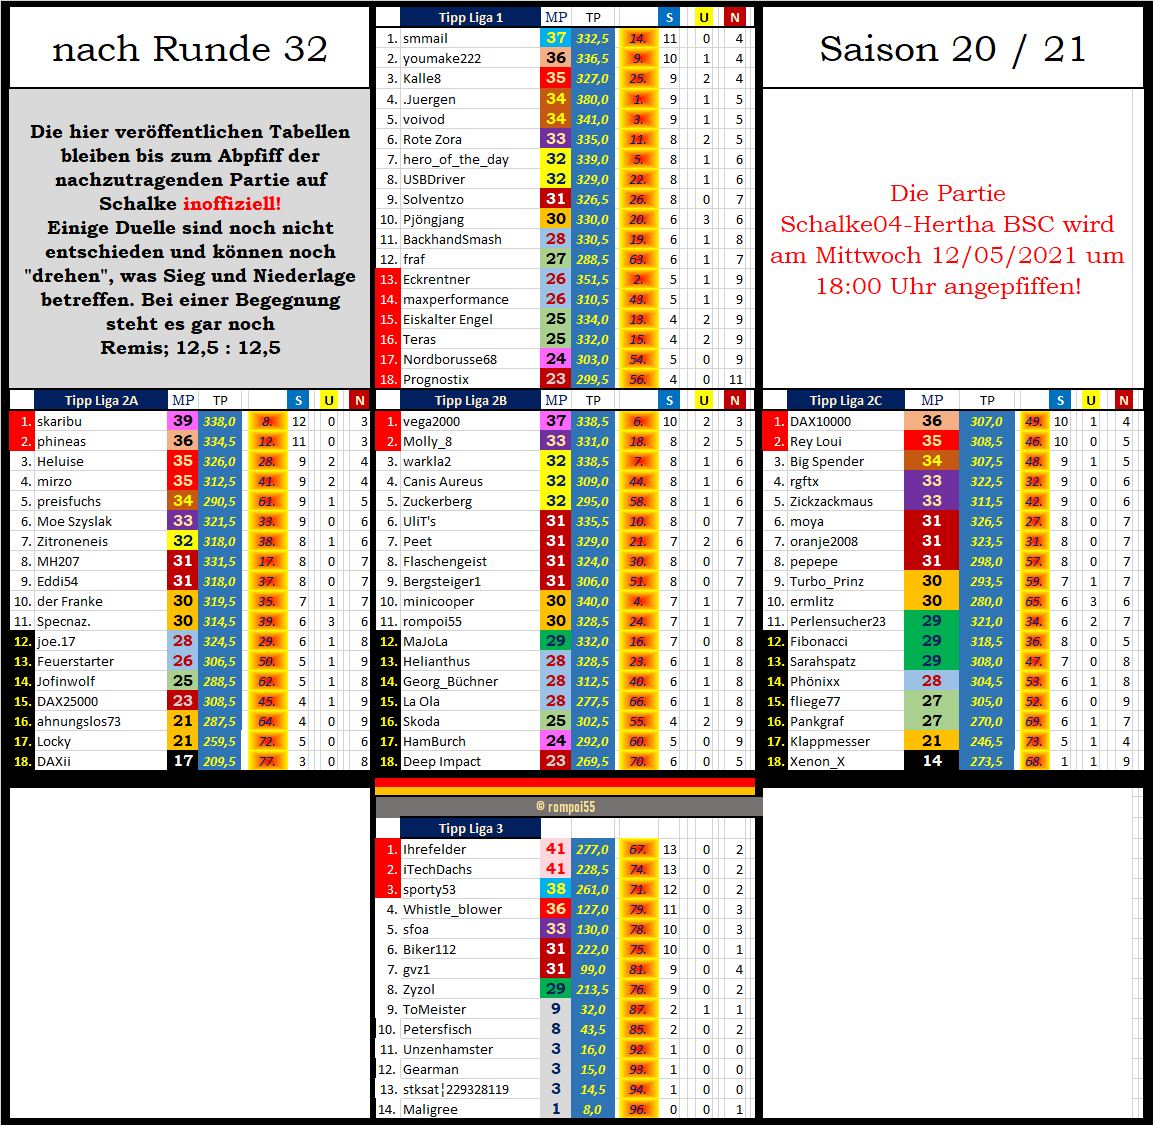 tabelle_zw_nach_runde_32.png